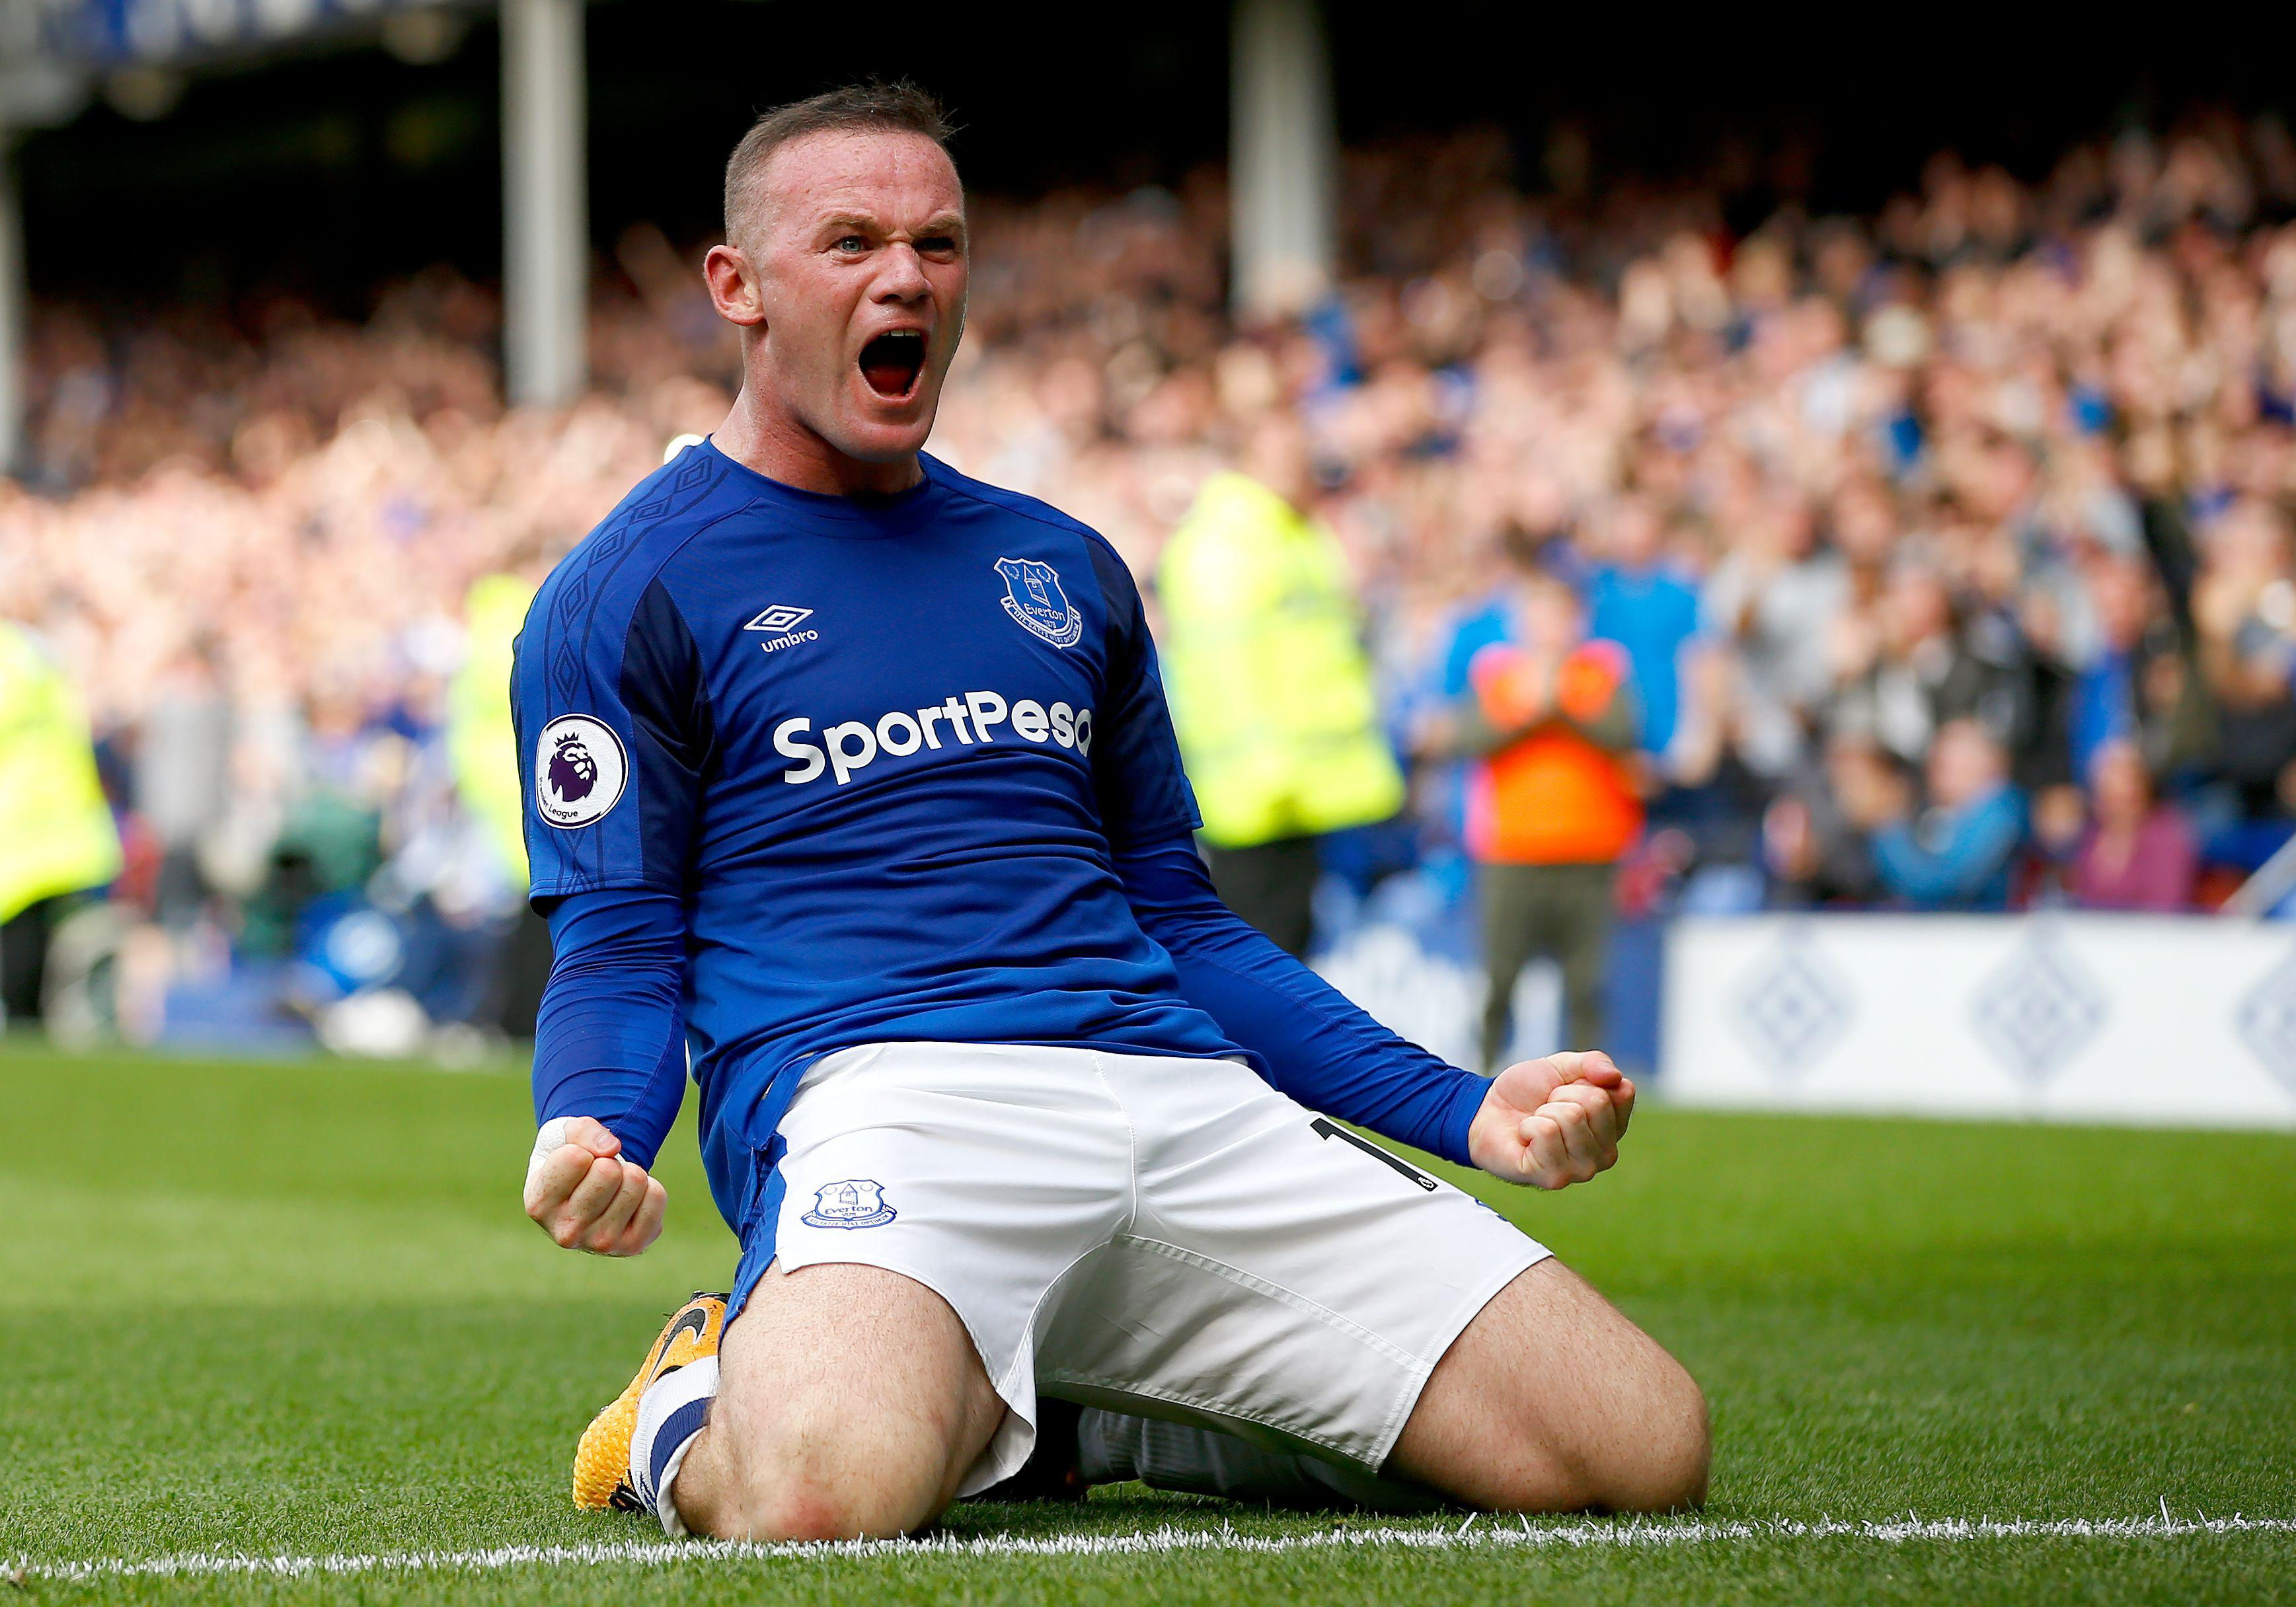 Rooney's has returned to Everton after 13 years away